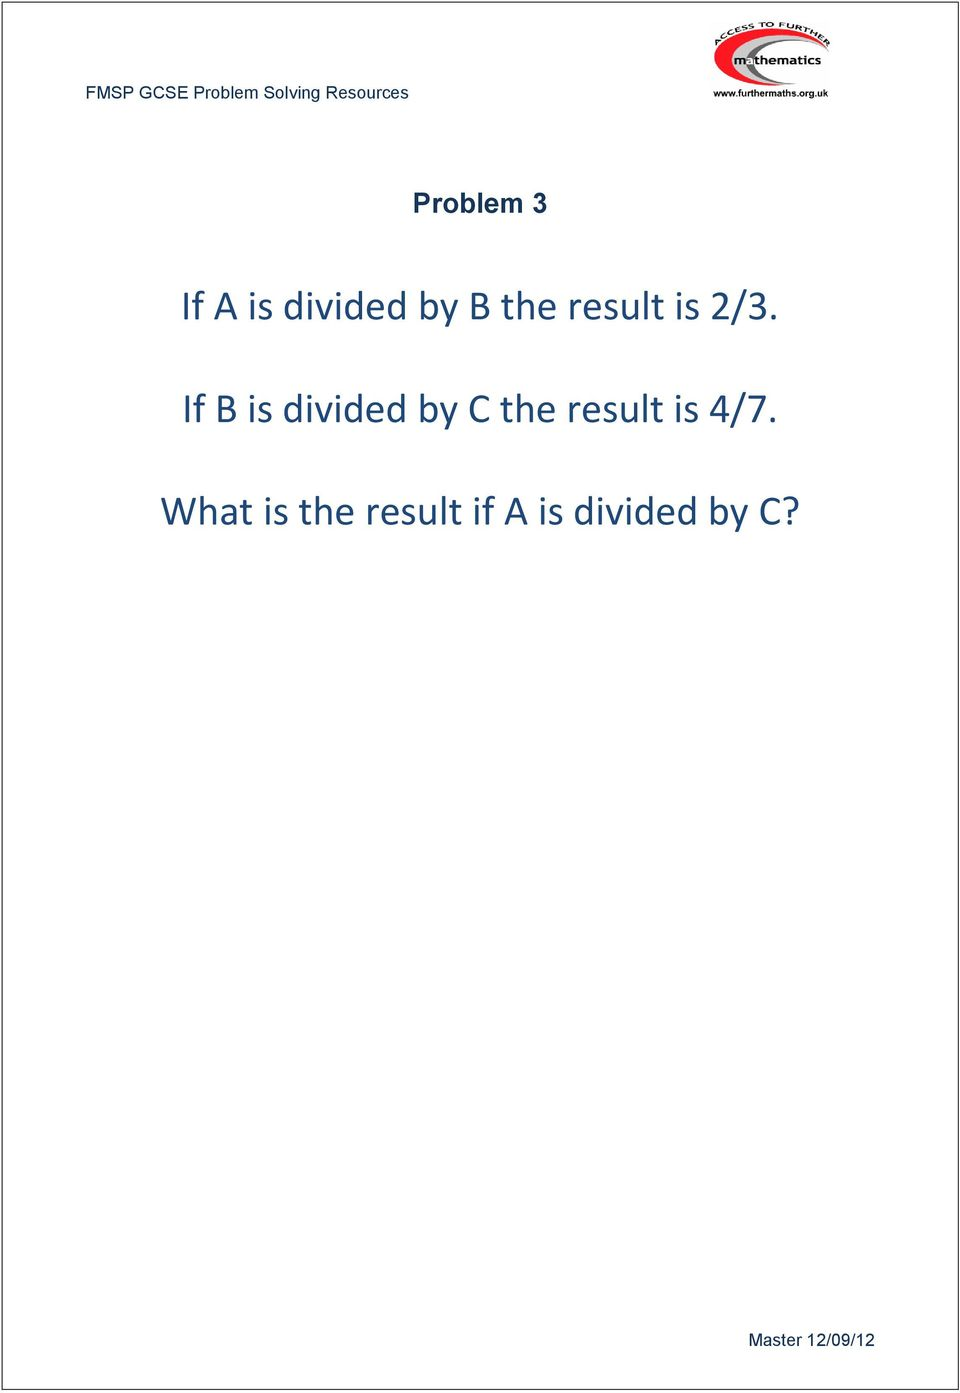 If B is divided by C the result